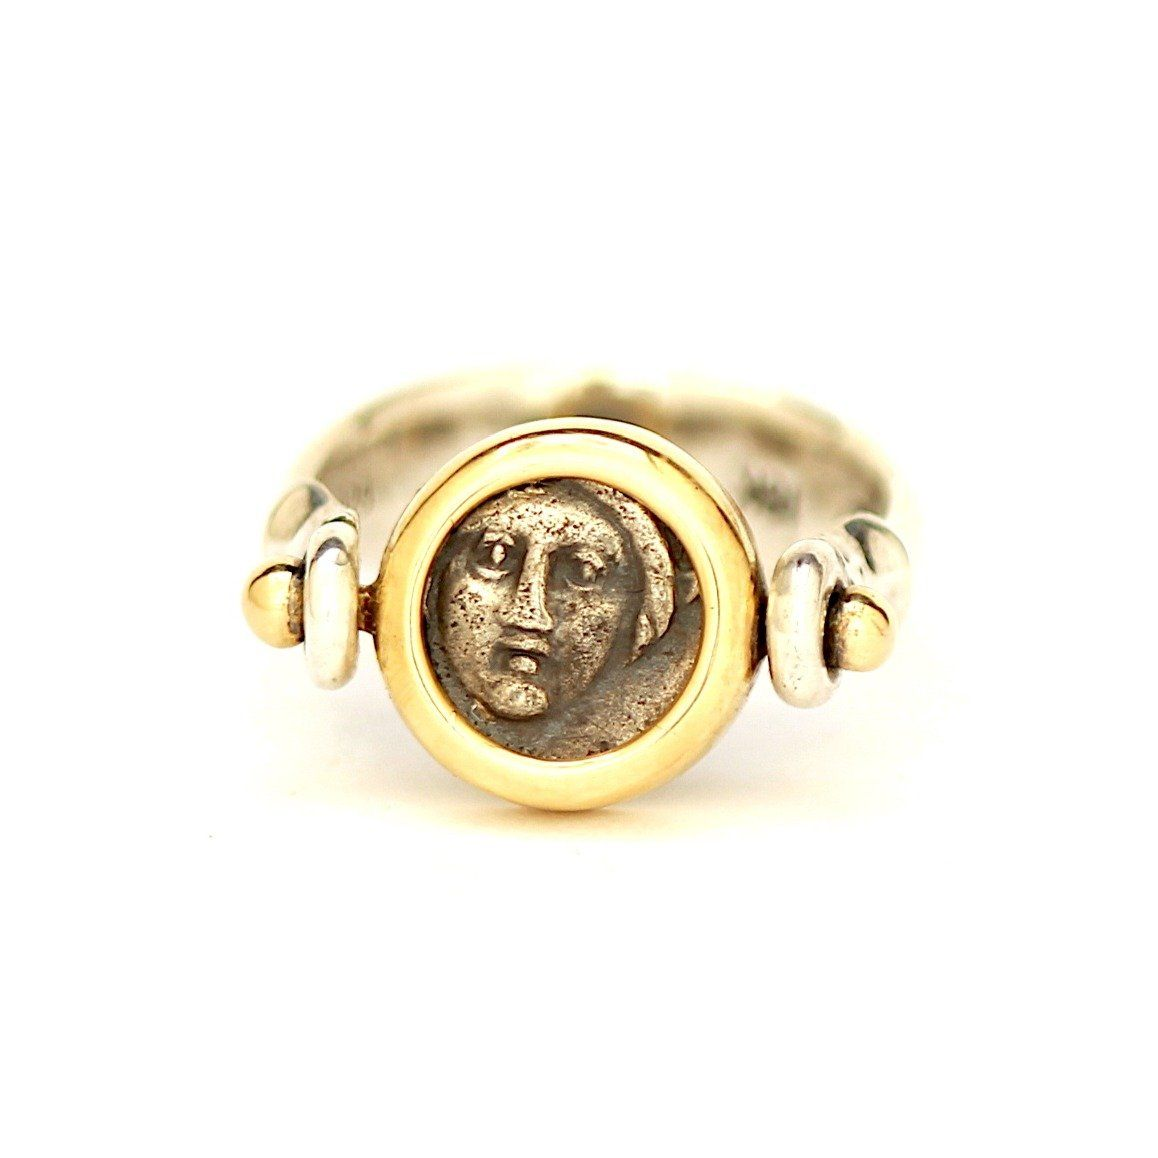 Greek Coin, Swivel Ring, Apollo, 14K Gold and Silver, Genuine Ancient Coin, with Certificate ID13151 - Erez Ancient Coin Jewelry, ancient coin jewelry, men jewelry, genuine ancient coins, made in the US